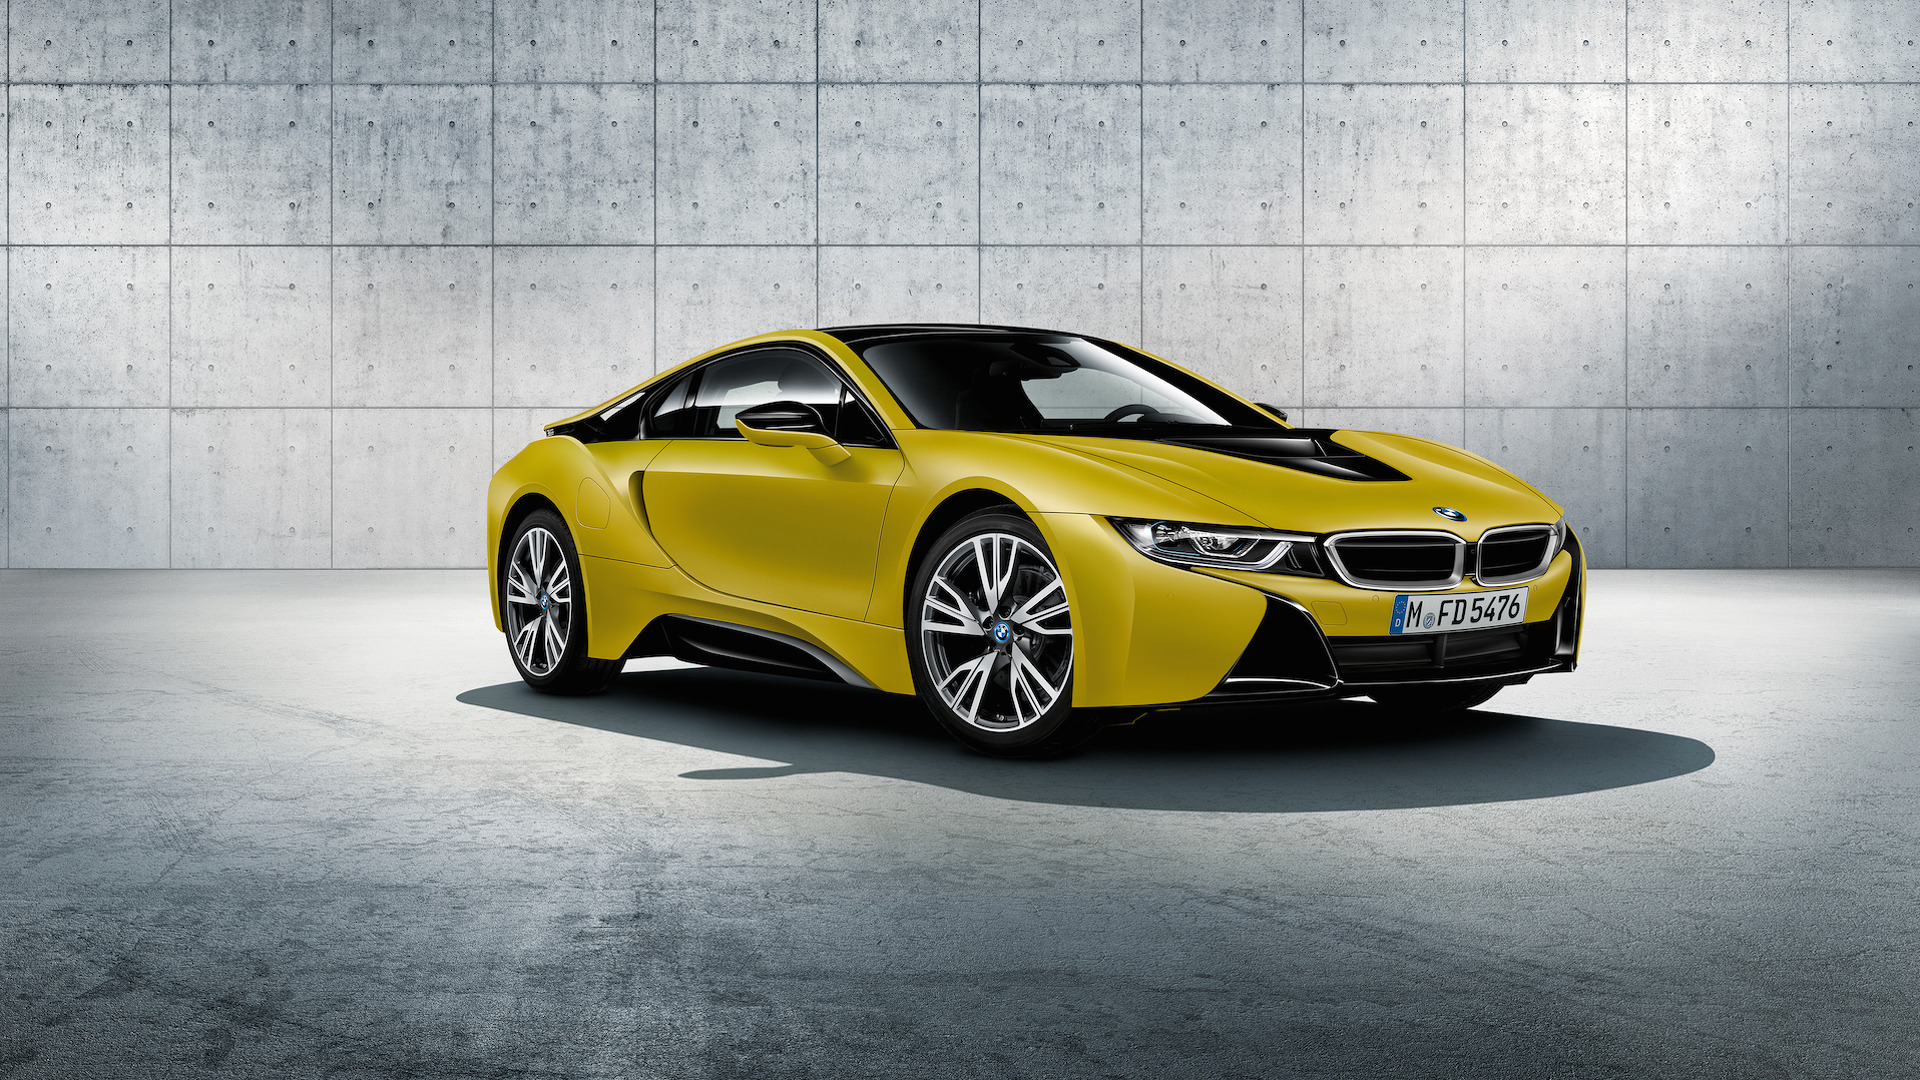 bmw-i8-frozen-black-and-yellow.jpg